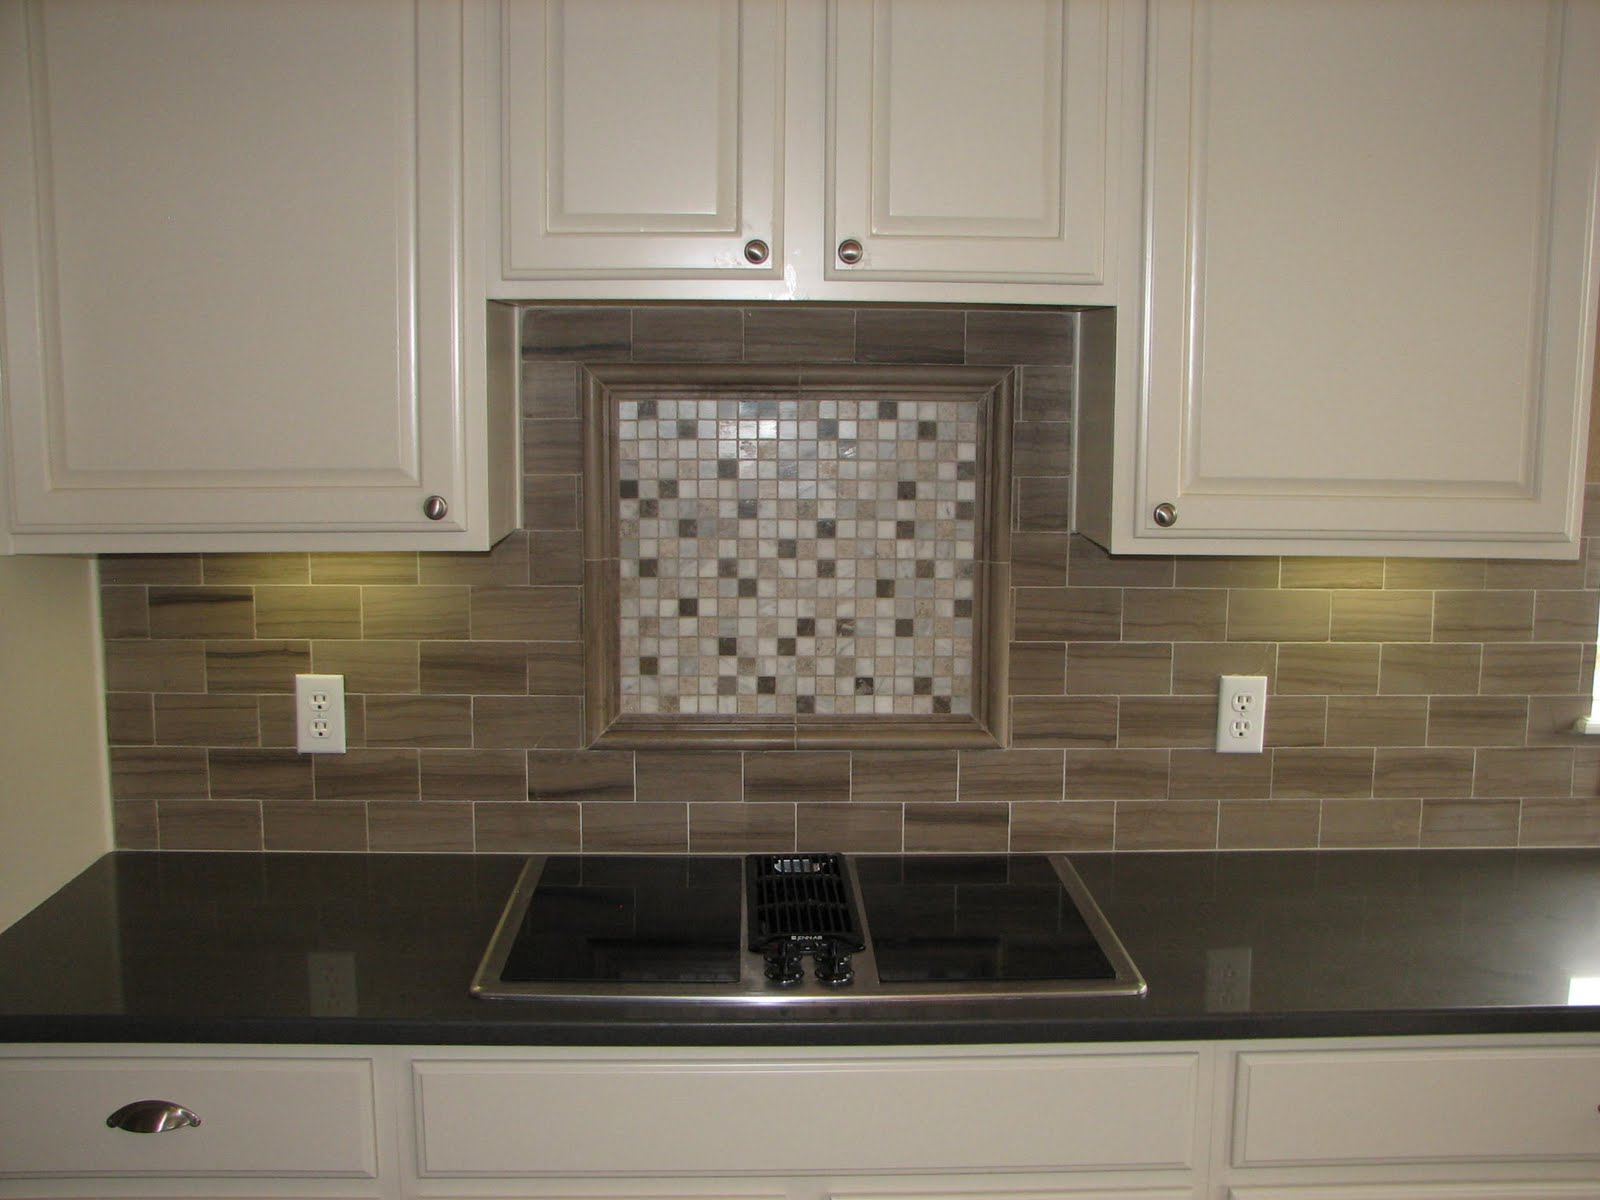 Integrity installations a division of front range backsplash june 2011 - Backsplash design ...